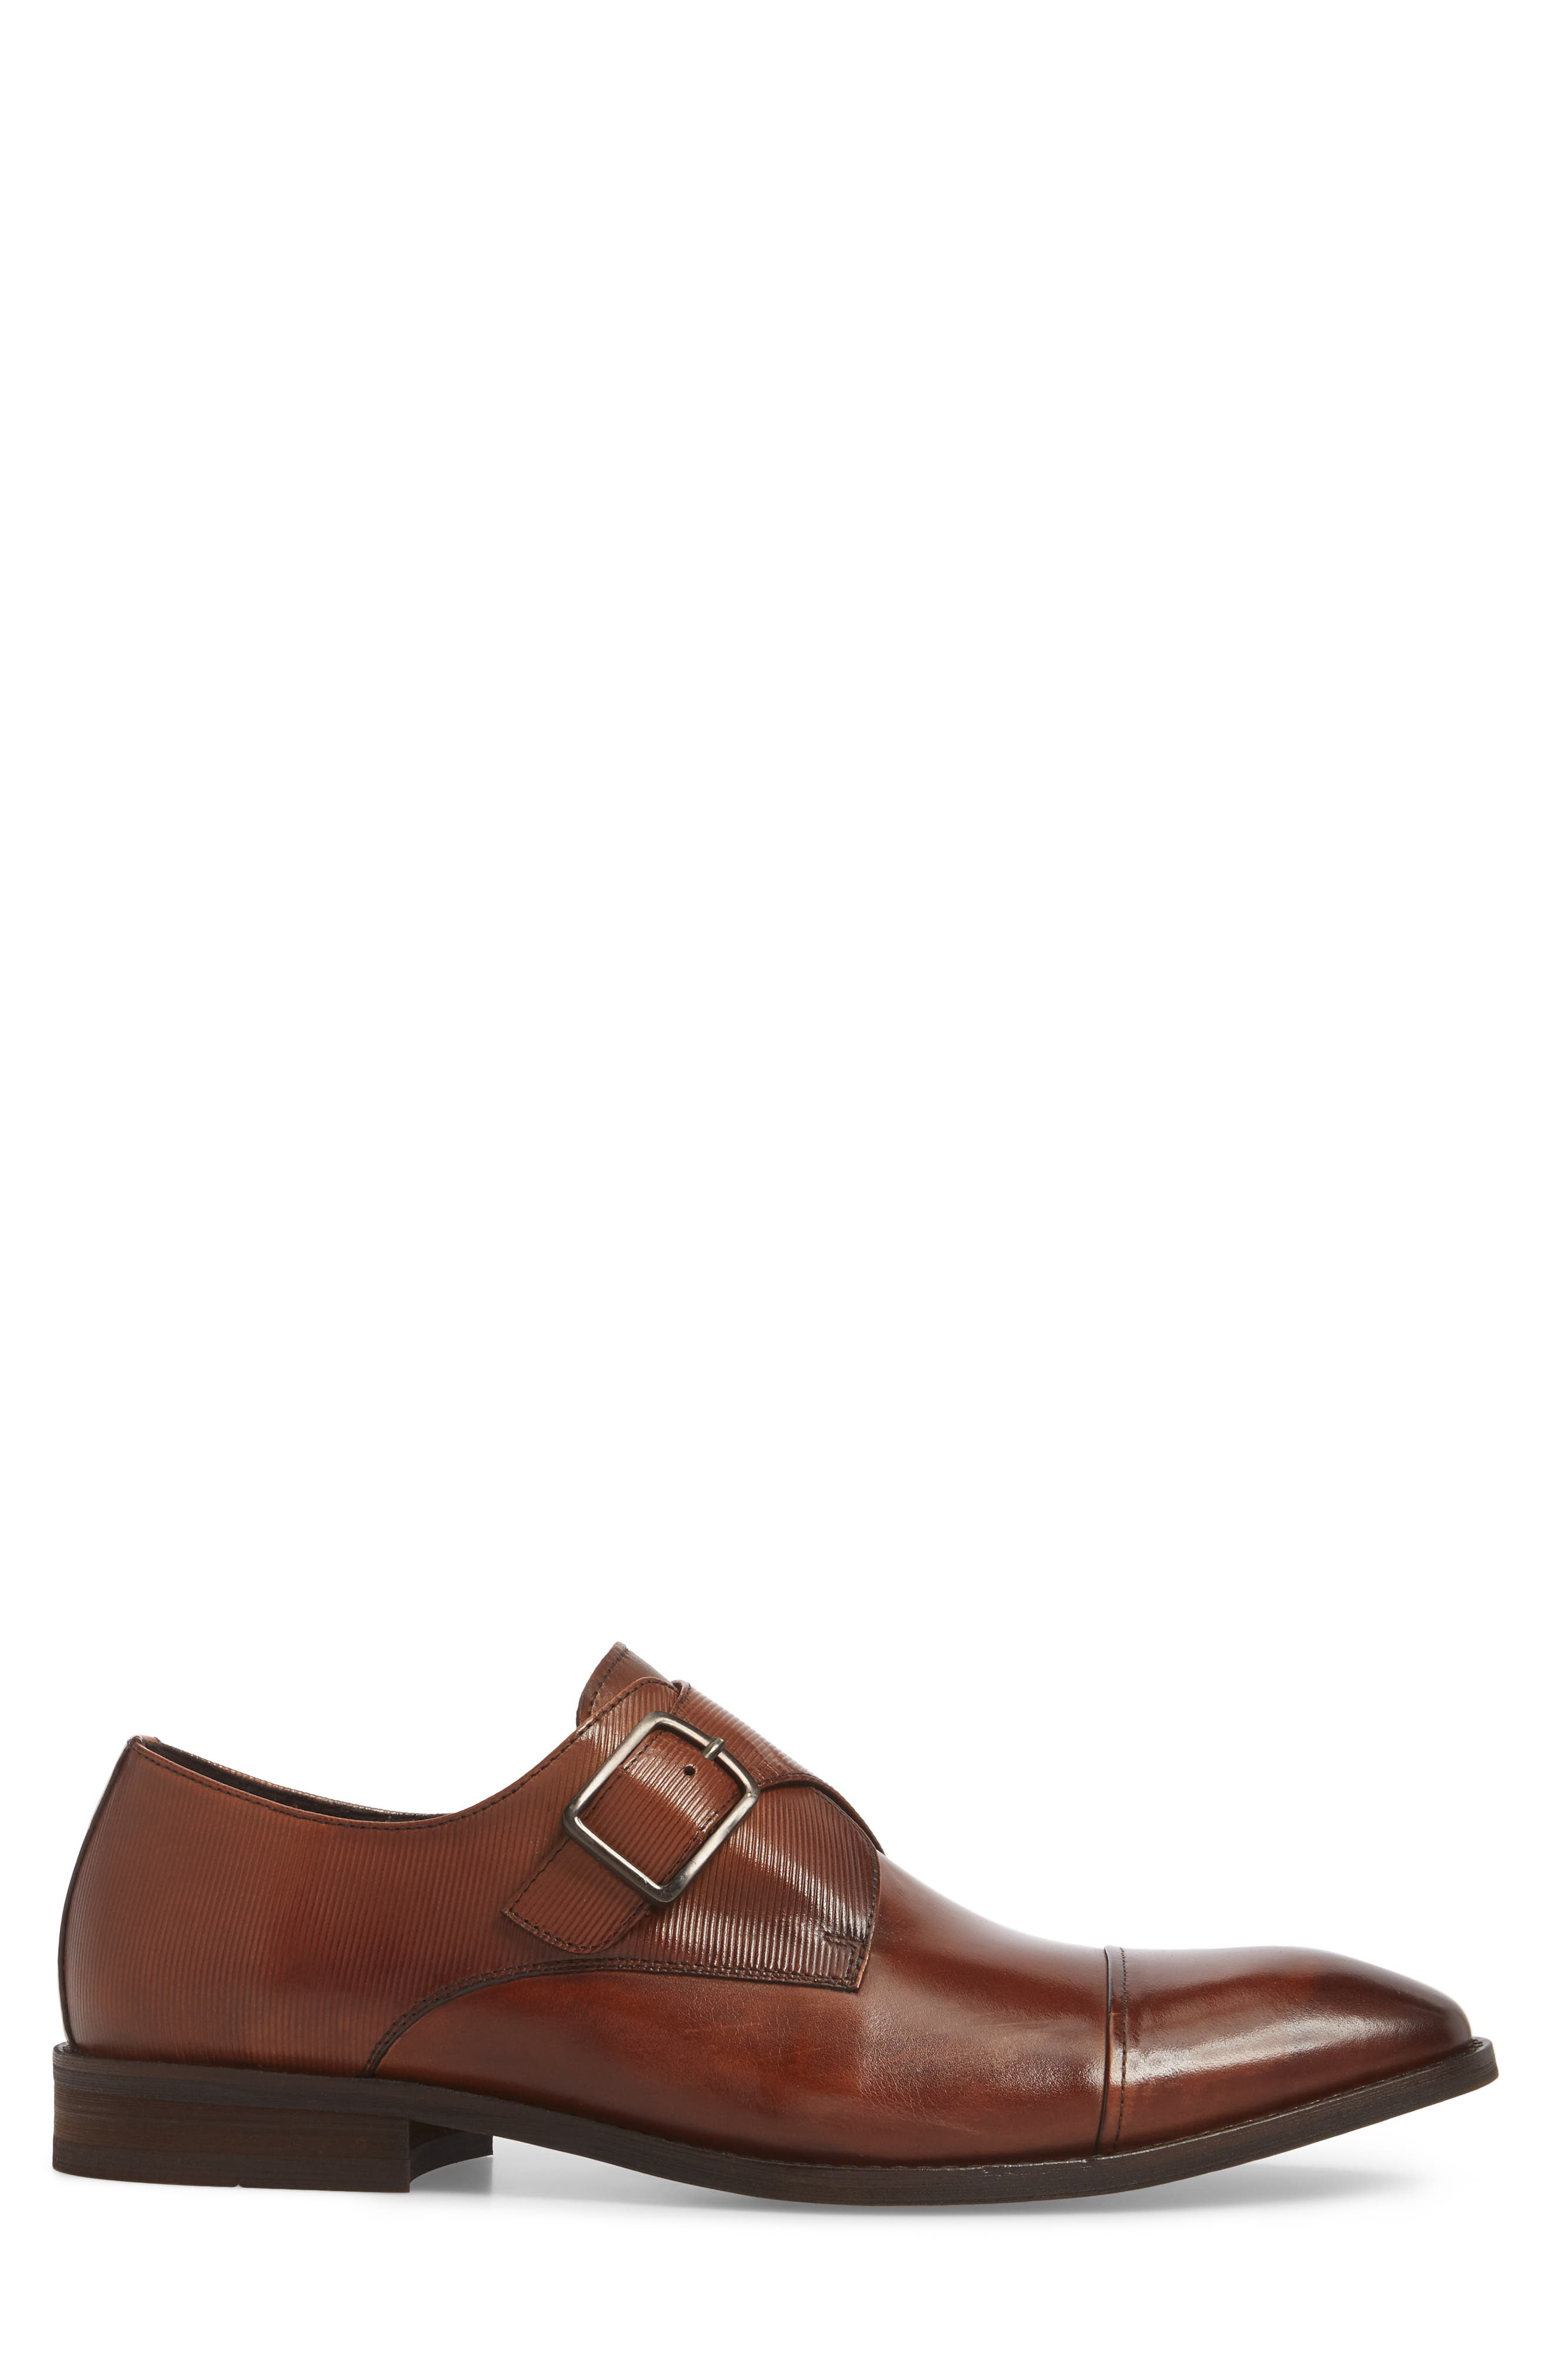 KENNETH COLE NEW YORK,                             Courage Monk Strap Shoe,                             Alternate thumbnail 3, color,                             200